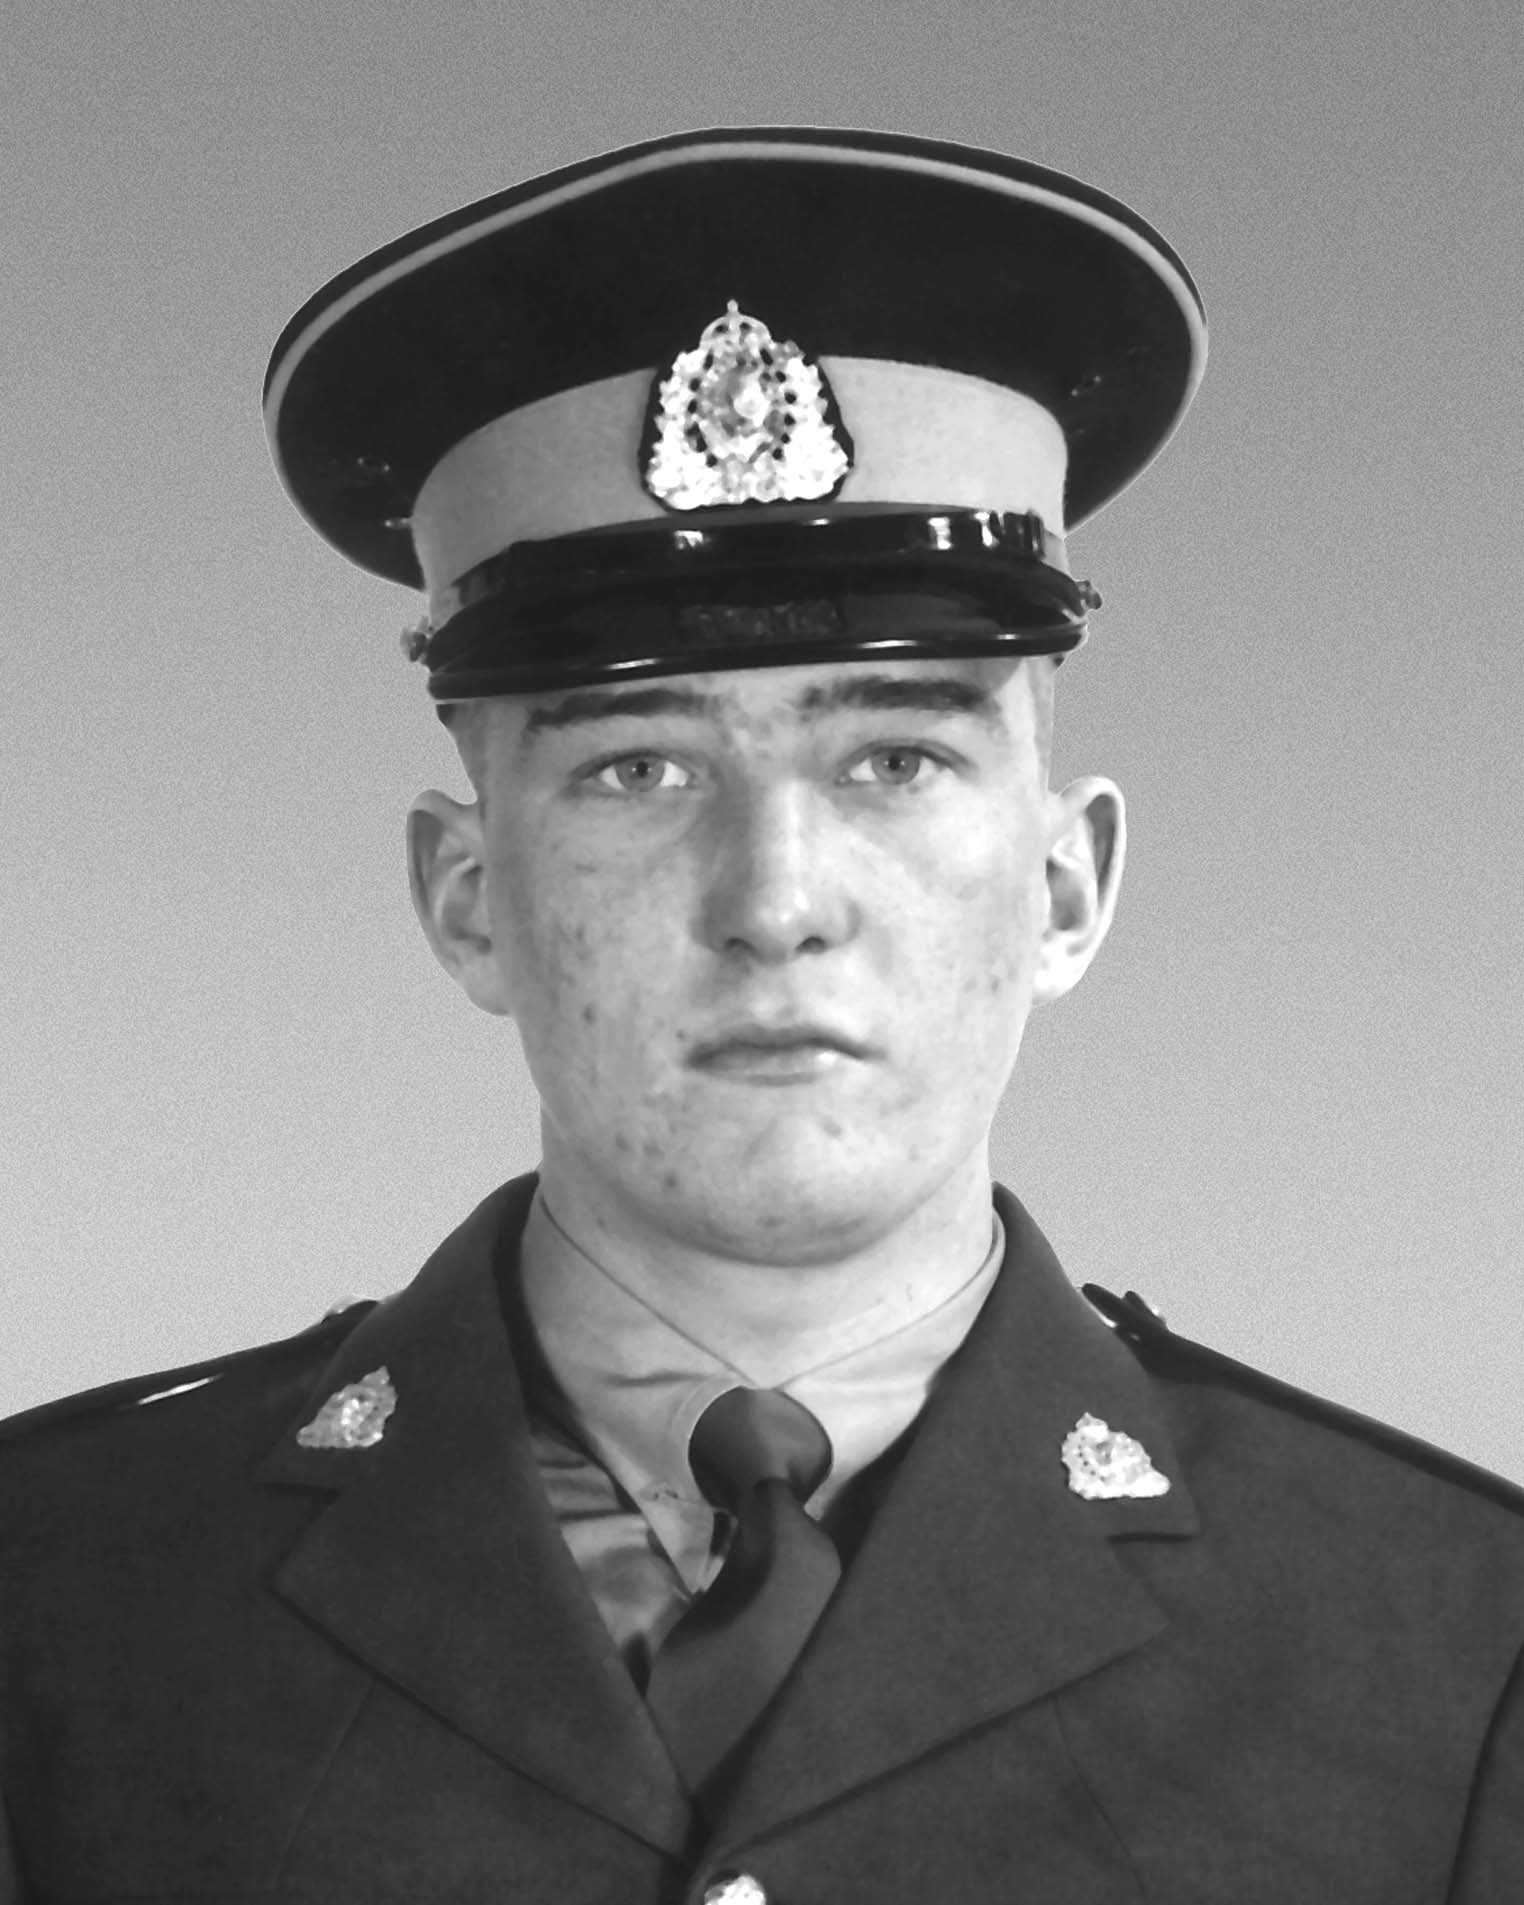 Constable John Roland Cobley – © Her Majesty the Queen in Right of Canada as represented by the Royal Canadian Mounted Police